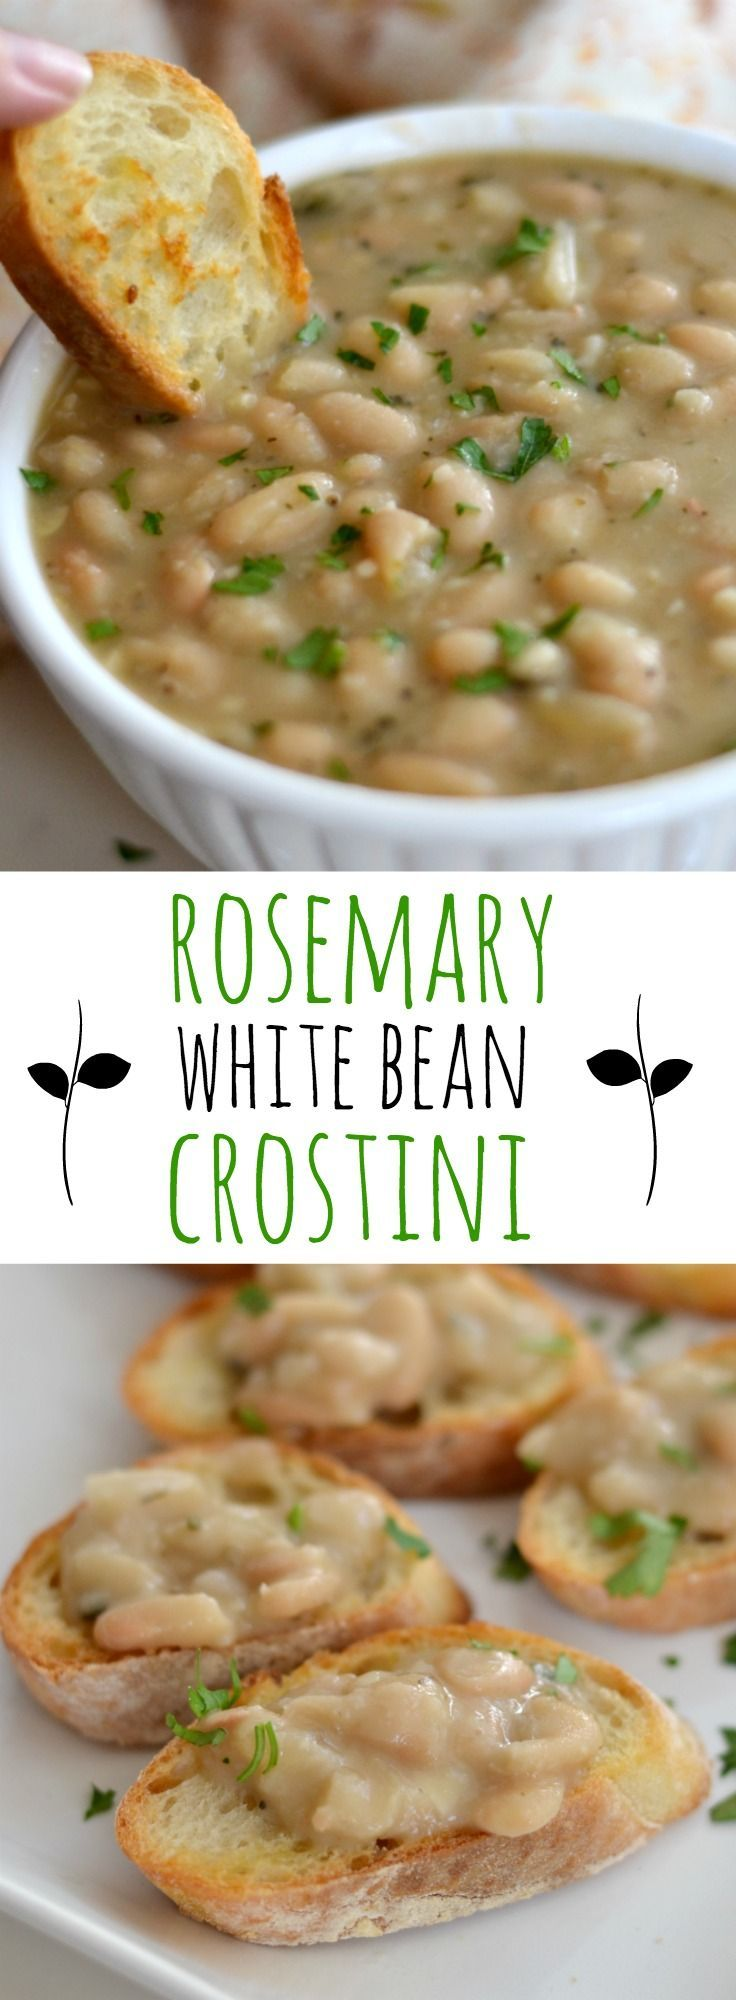 Easy party appetizer made with rosemary, white beans, and garlic.